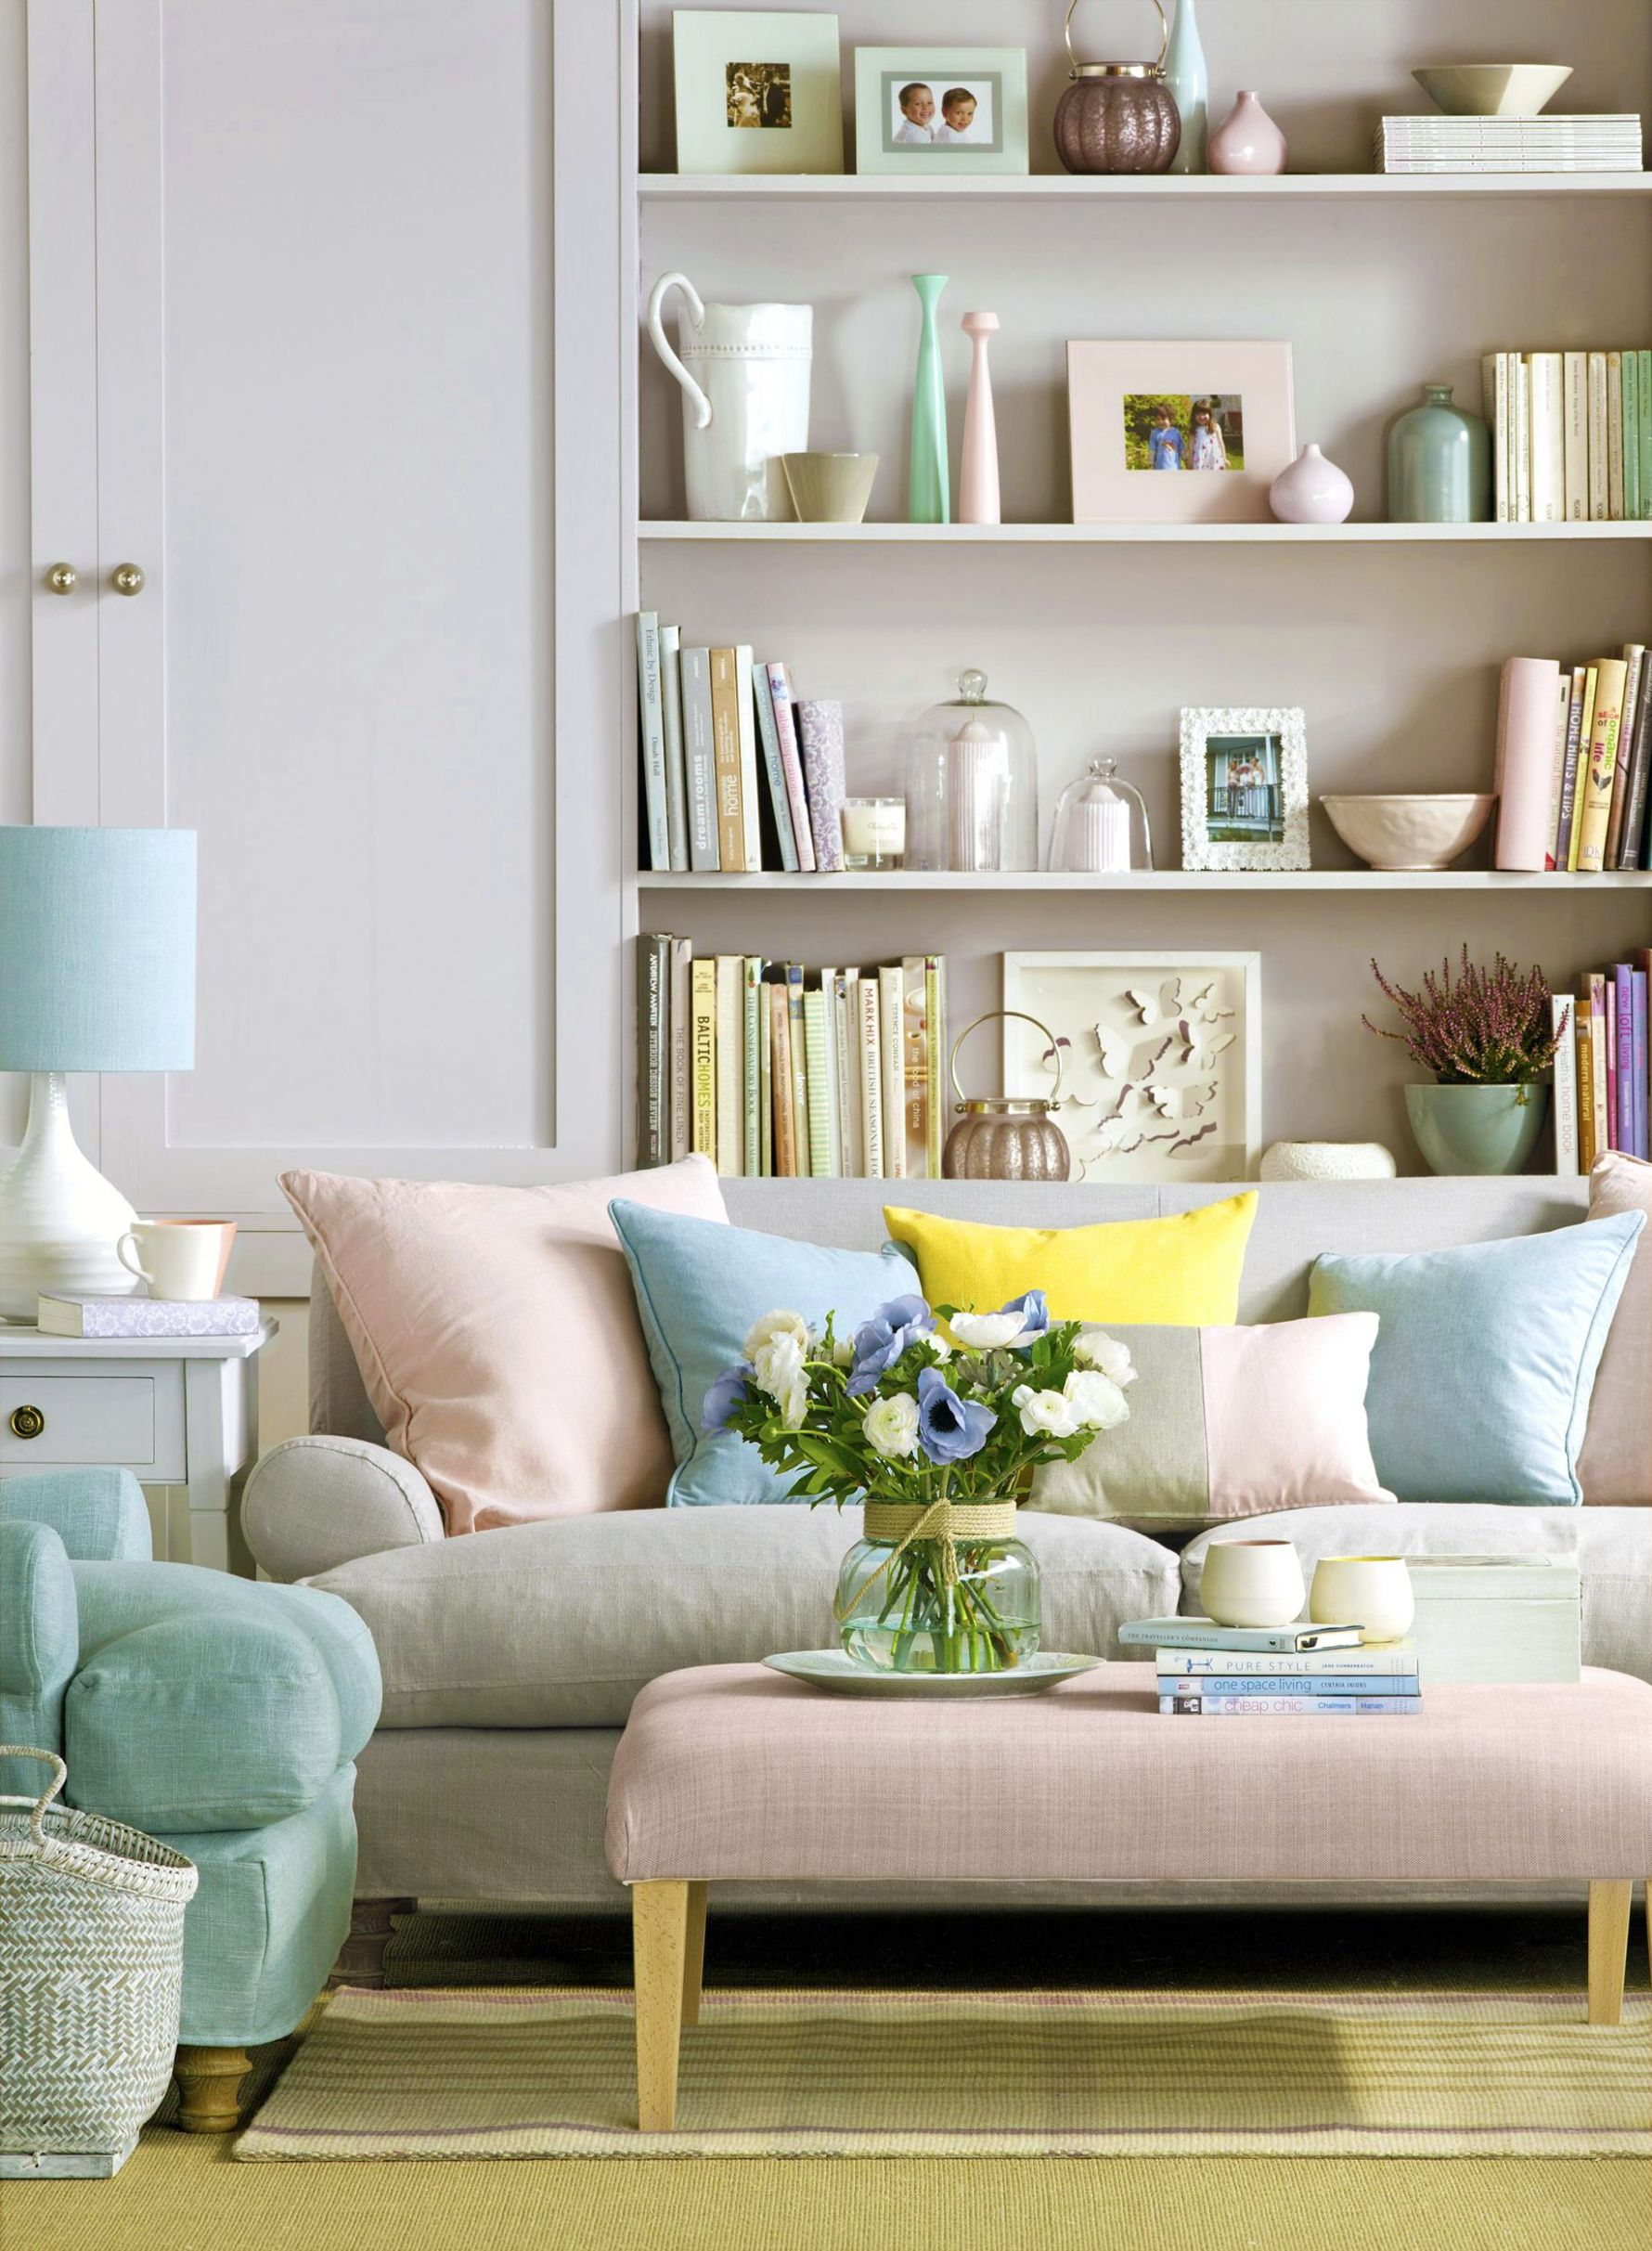 9 Spring Decor Ideas to Freshen Up Your Home - Best Spring ..